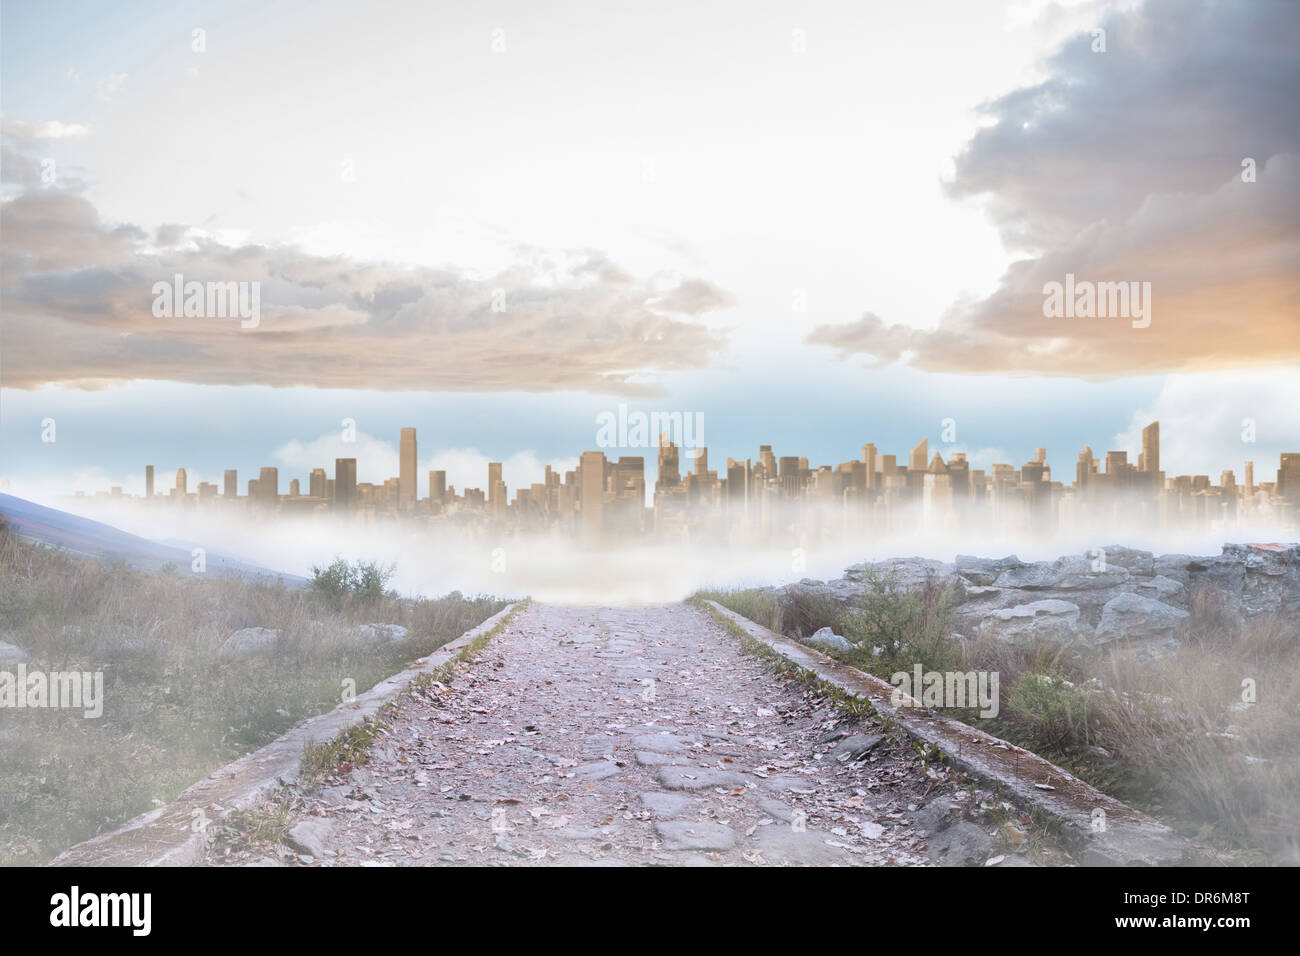 Rocky path leading to large urban sprawl - Stock Image